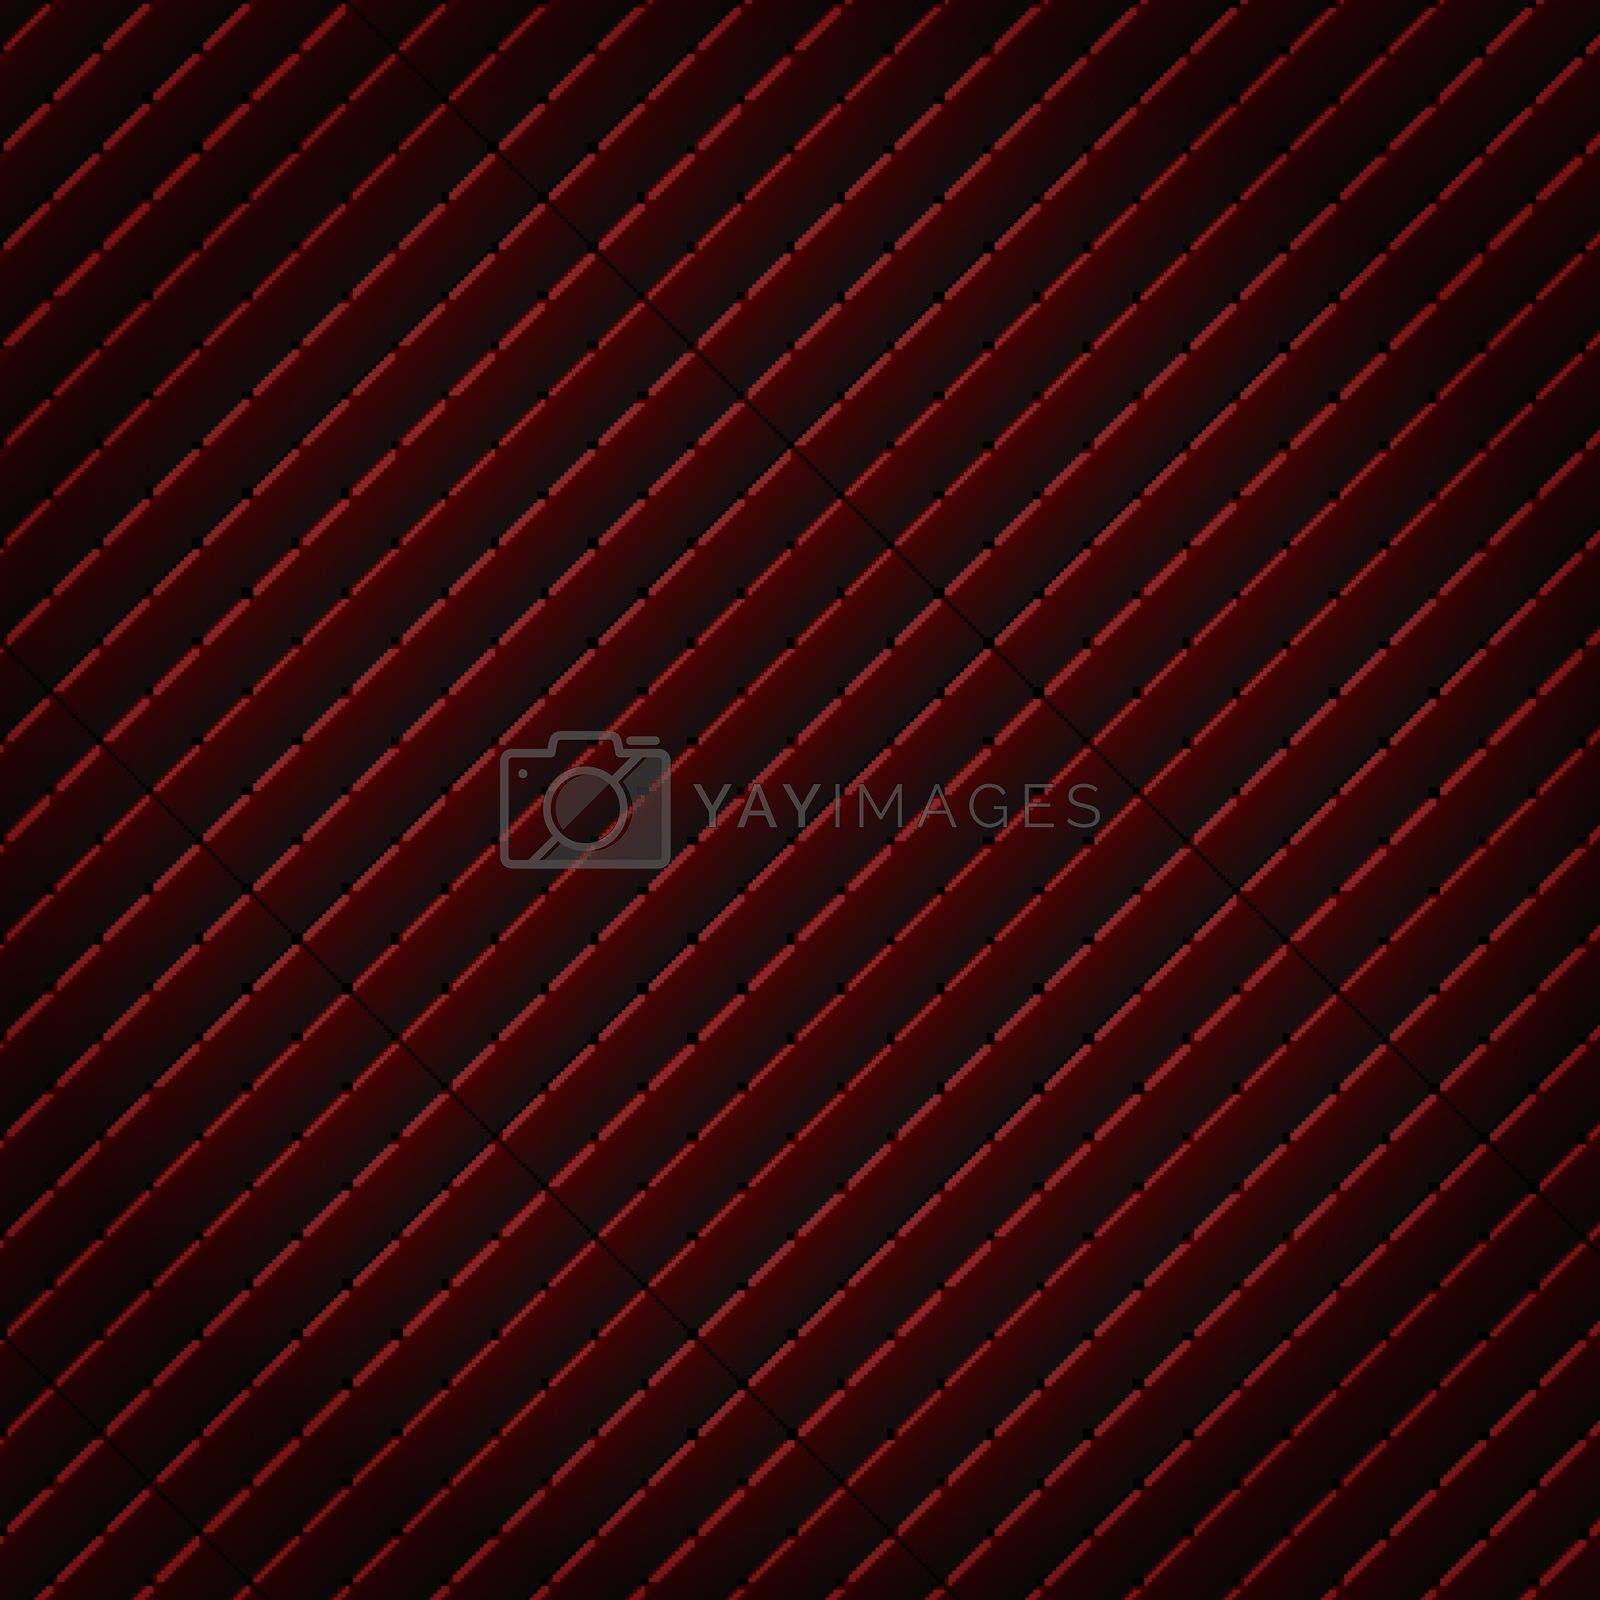 Abstract black and red subtle lattice square pattern background and texture. Luxury style. Repeat geometric grid. vector illustration